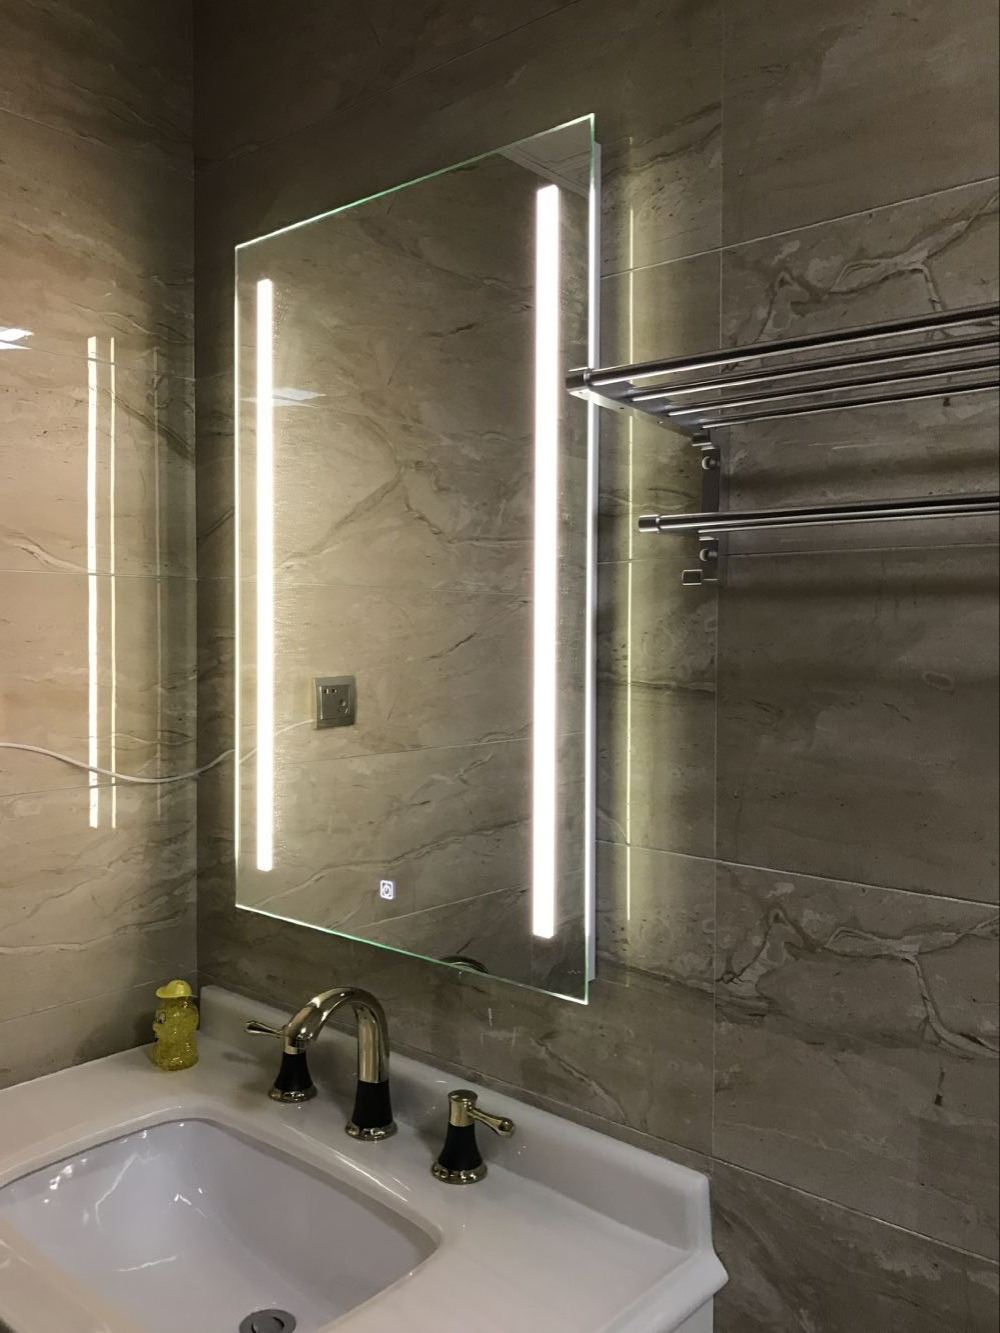 DIYHD Wall Mount Led Lighted Bathroom Mirror Vanity Defogger 2 Vertical Lights Rectangular Touch Light Mirror